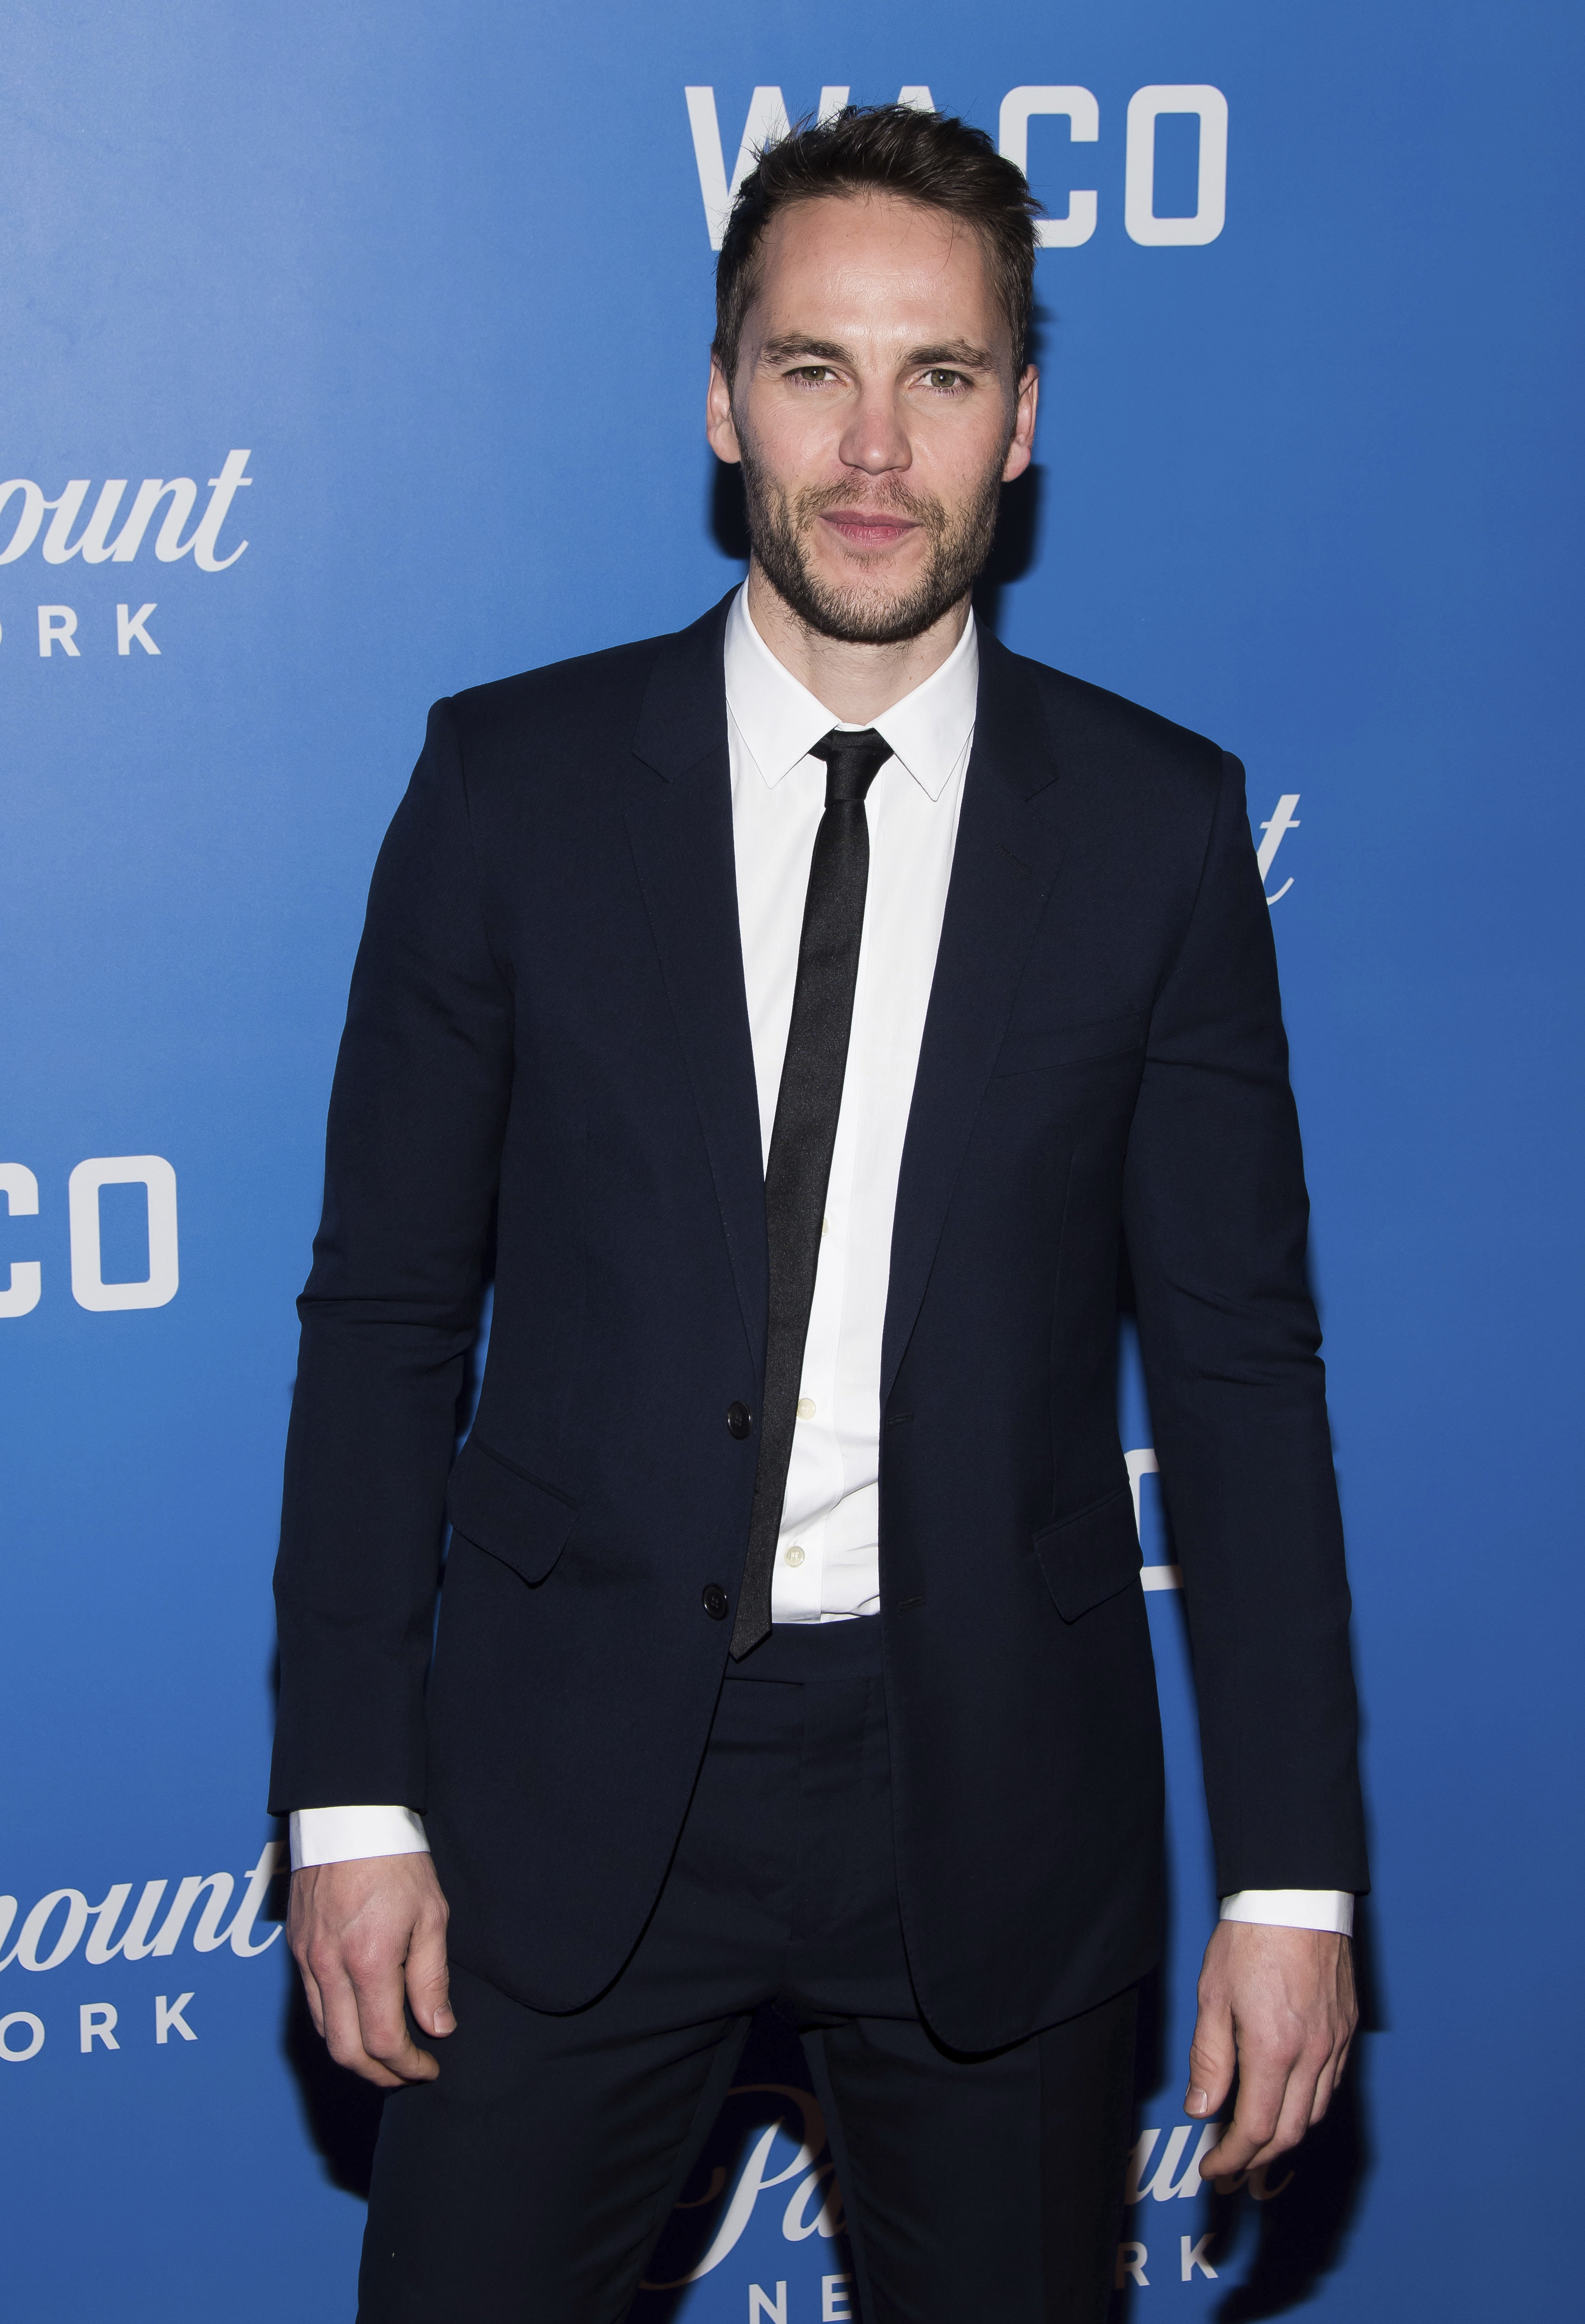 """Taylor Kitsch attends the world premiere of """"Waco"""" at Jazz at Lincoln Center in New York City on Jan. 22, 2018."""